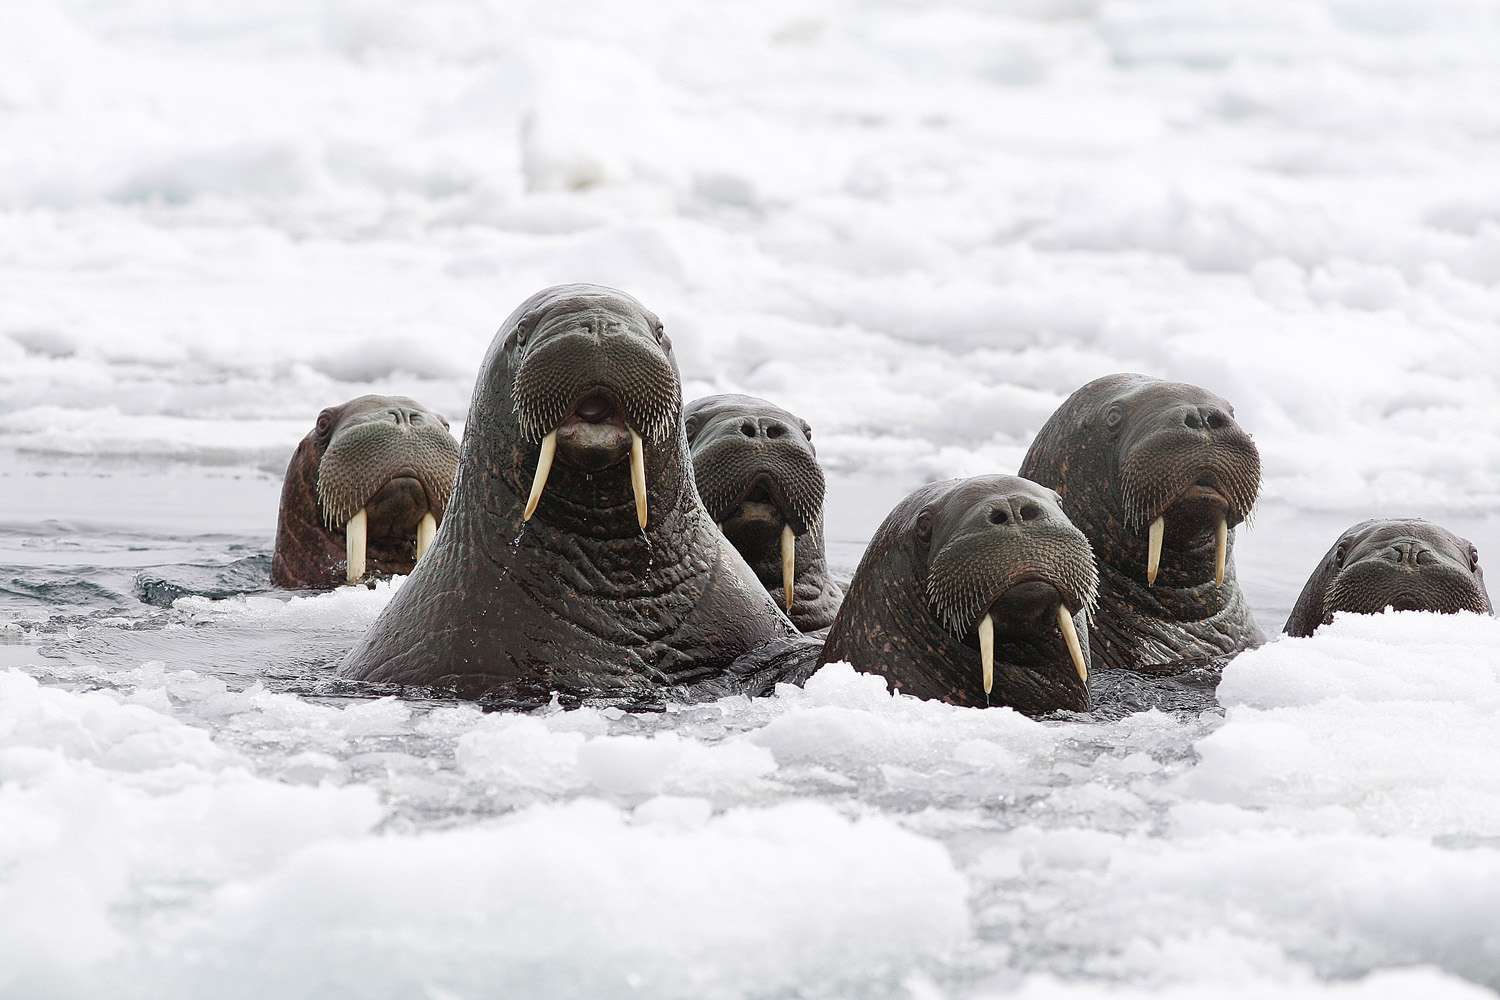 Lost habitat Herds of walruses retreat to land after the sea ice they depended on turned to slush